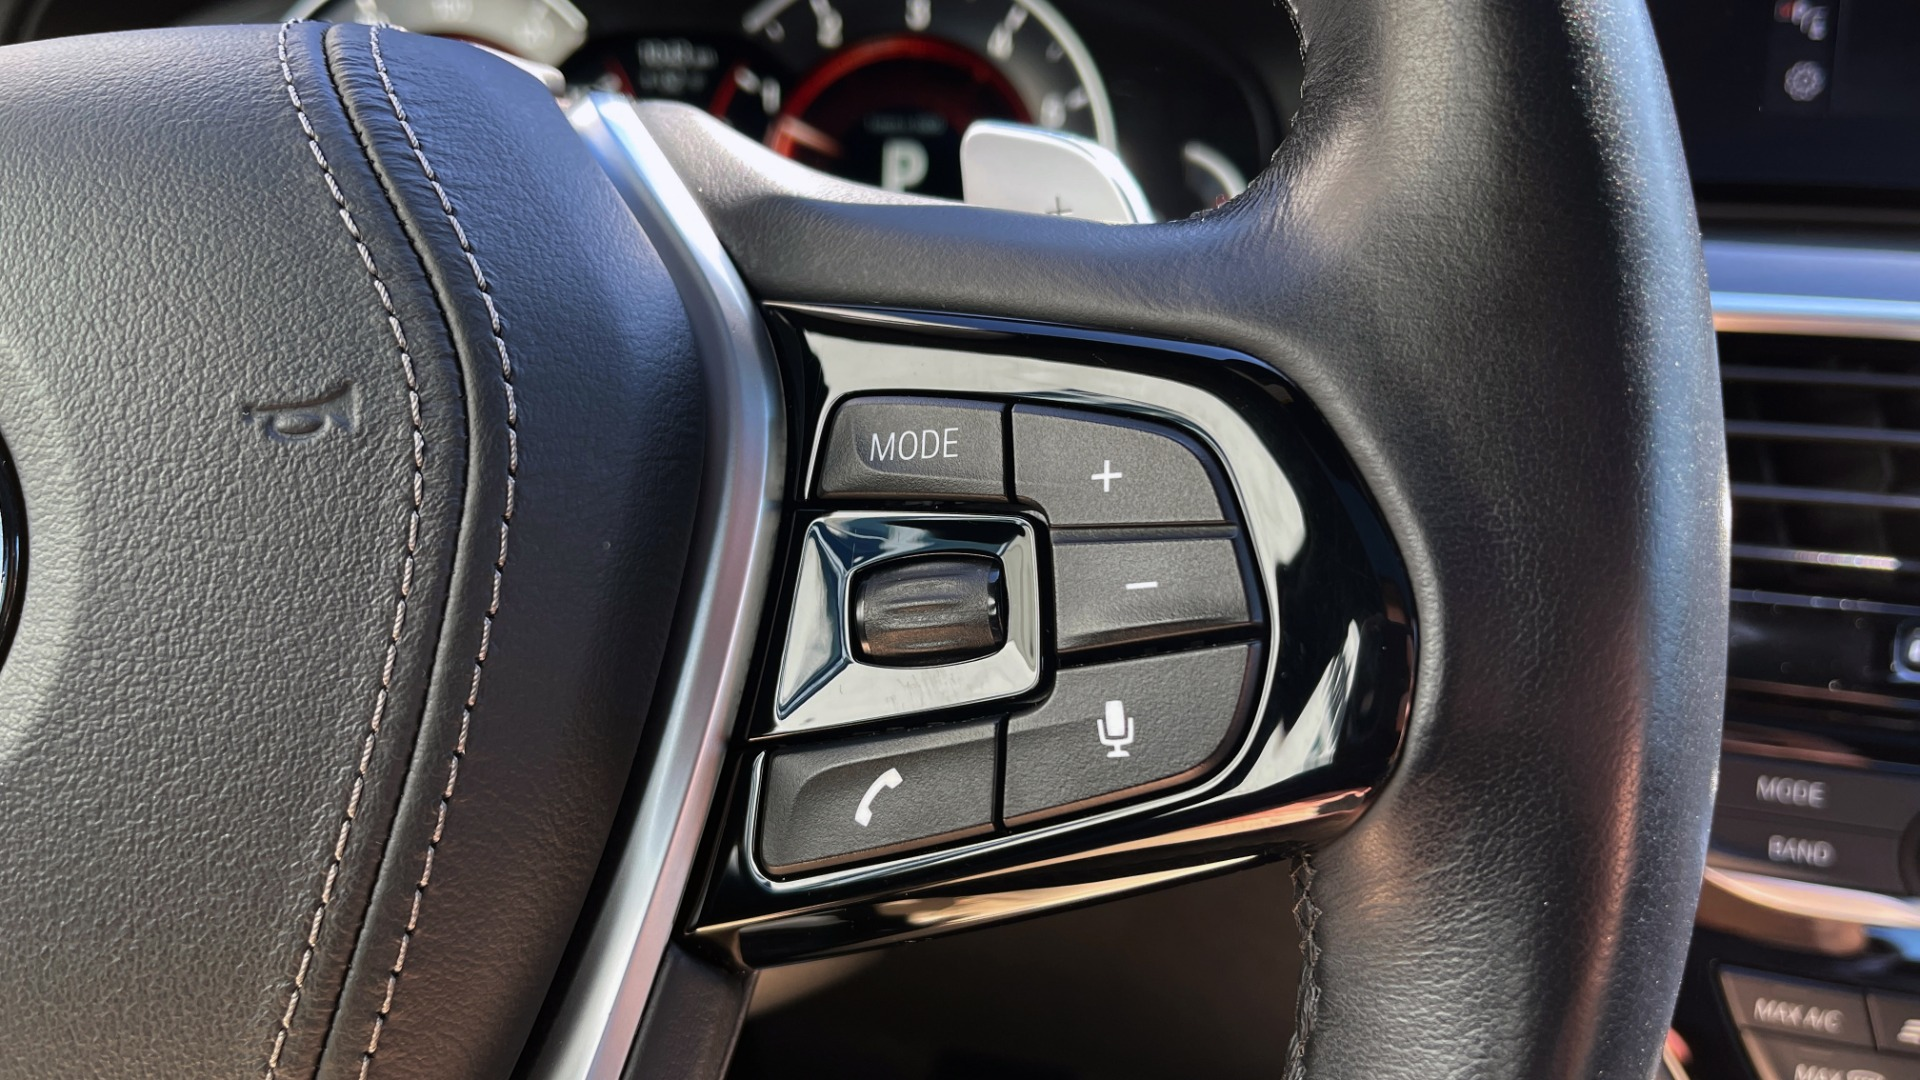 Used 2018 BMW 5 SERIES 540I XDRIVE PREMIUM / NAV / PARK ASST / WIRELESS CHARGING H/K SND for sale $38,395 at Formula Imports in Charlotte NC 28227 46